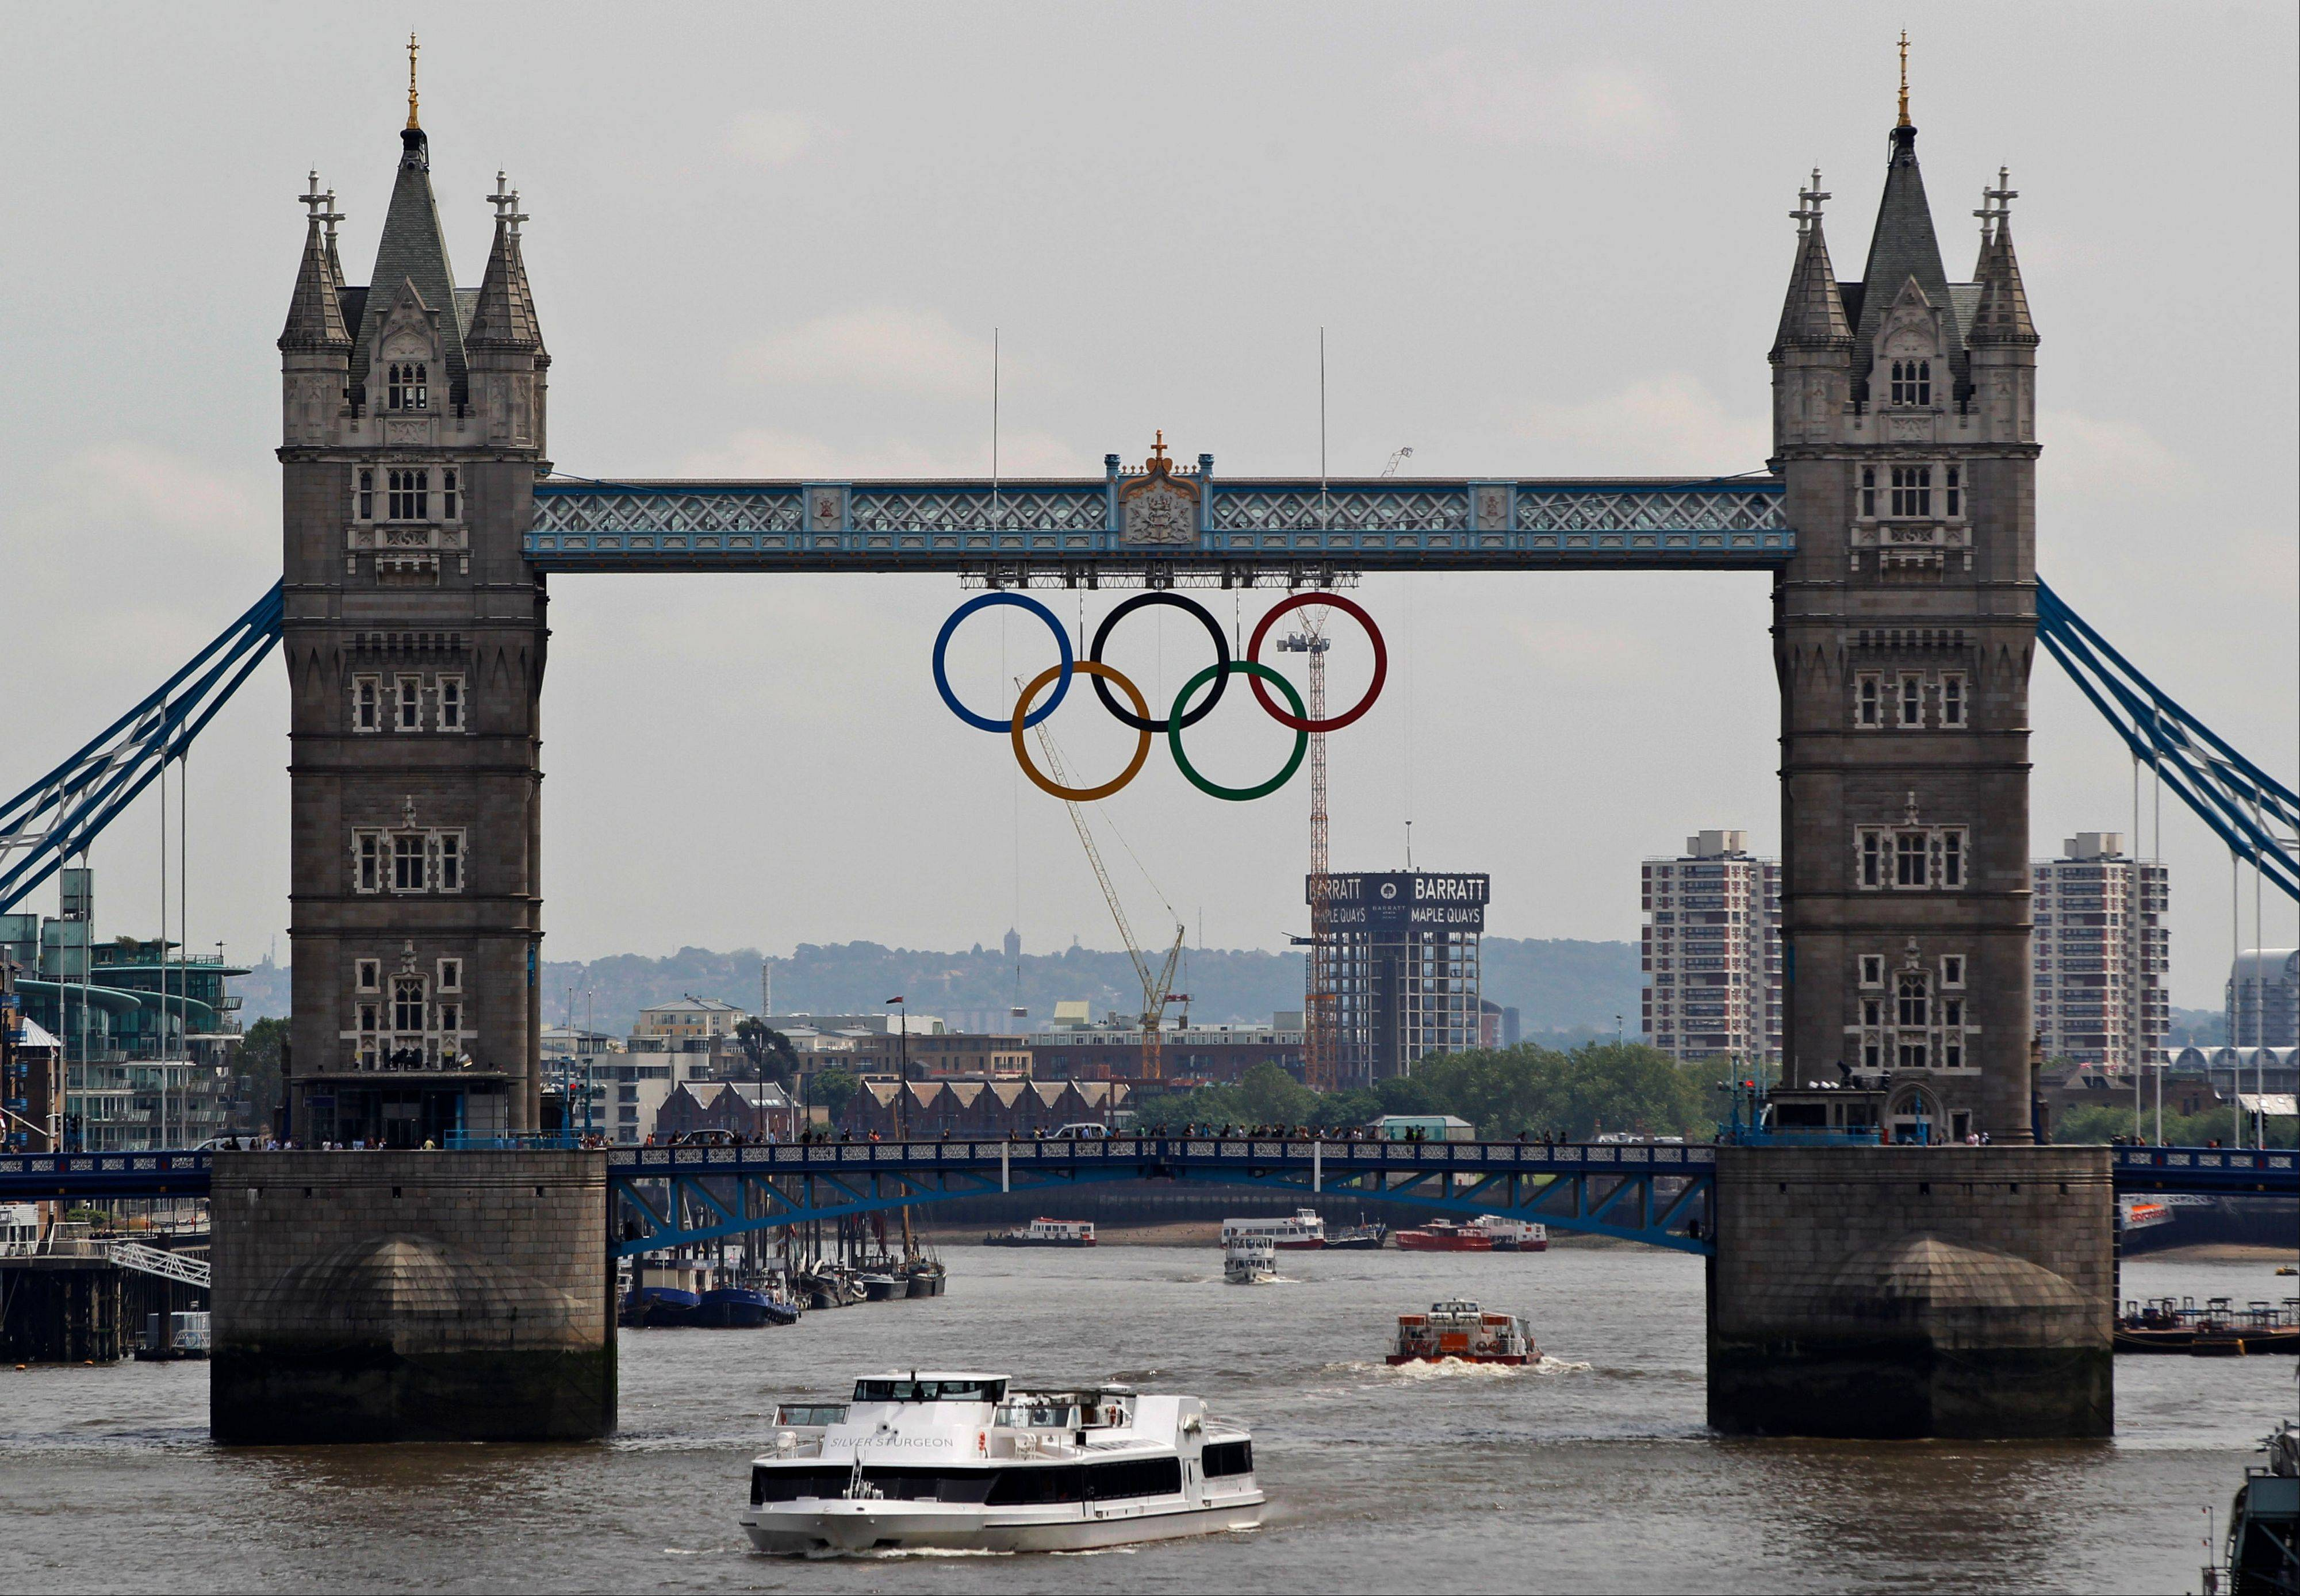 The Olympic rings sit atop the iconic Tower Bridge over the Thames in London. The giant rings will remain in position for the duration of the London 2012 Games.